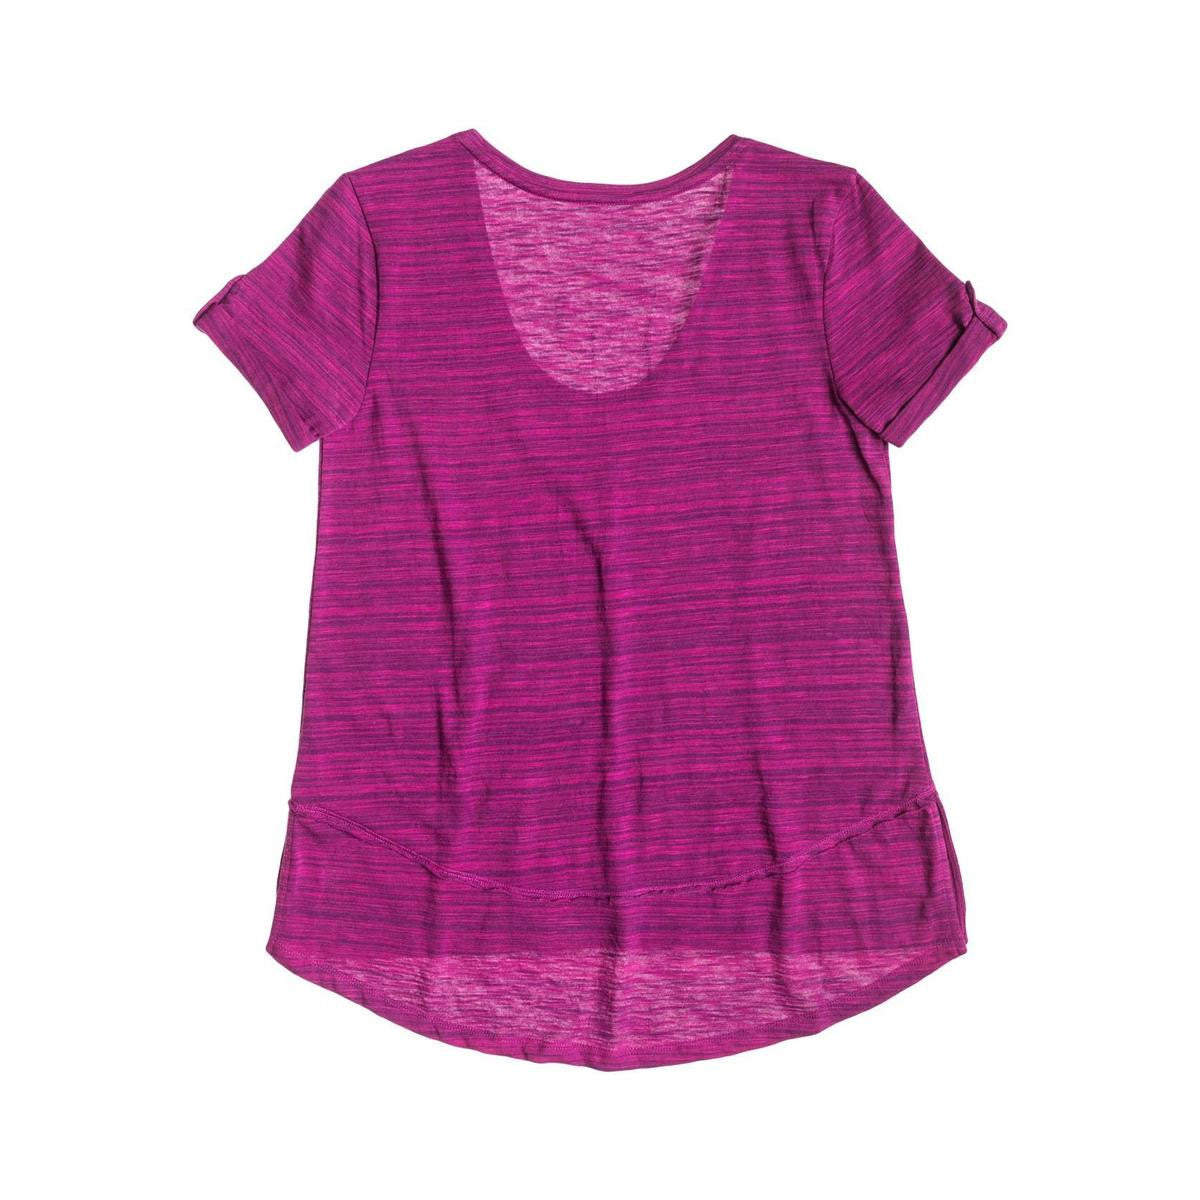 Roxy Malibu Lagoon Top Very Berry Size New Womens